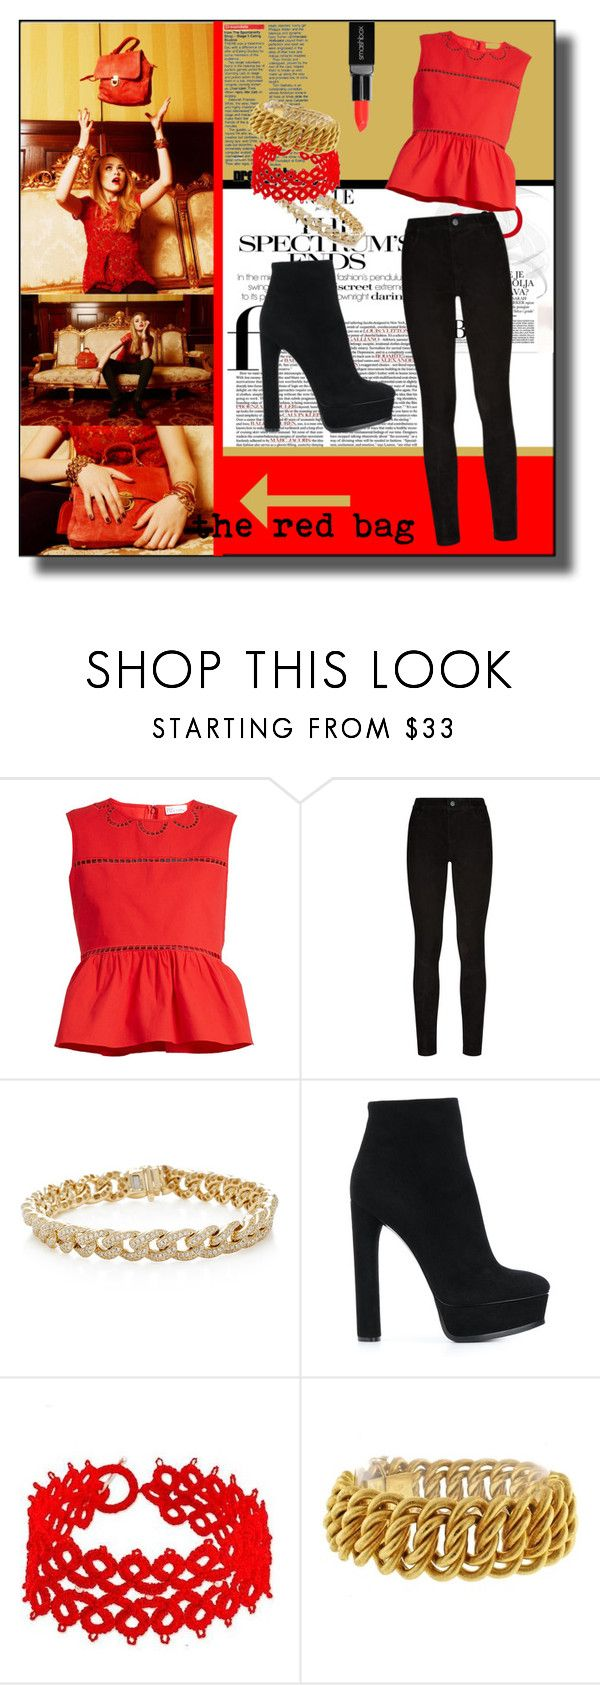 """""""The Red Bag"""" by kelly-floramoon-legg ❤ liked on Polyvore featuring RED Valentino, Paige Denim, Sydney Evan, Casadei, NOVICA, Buccellati and Smashbox"""